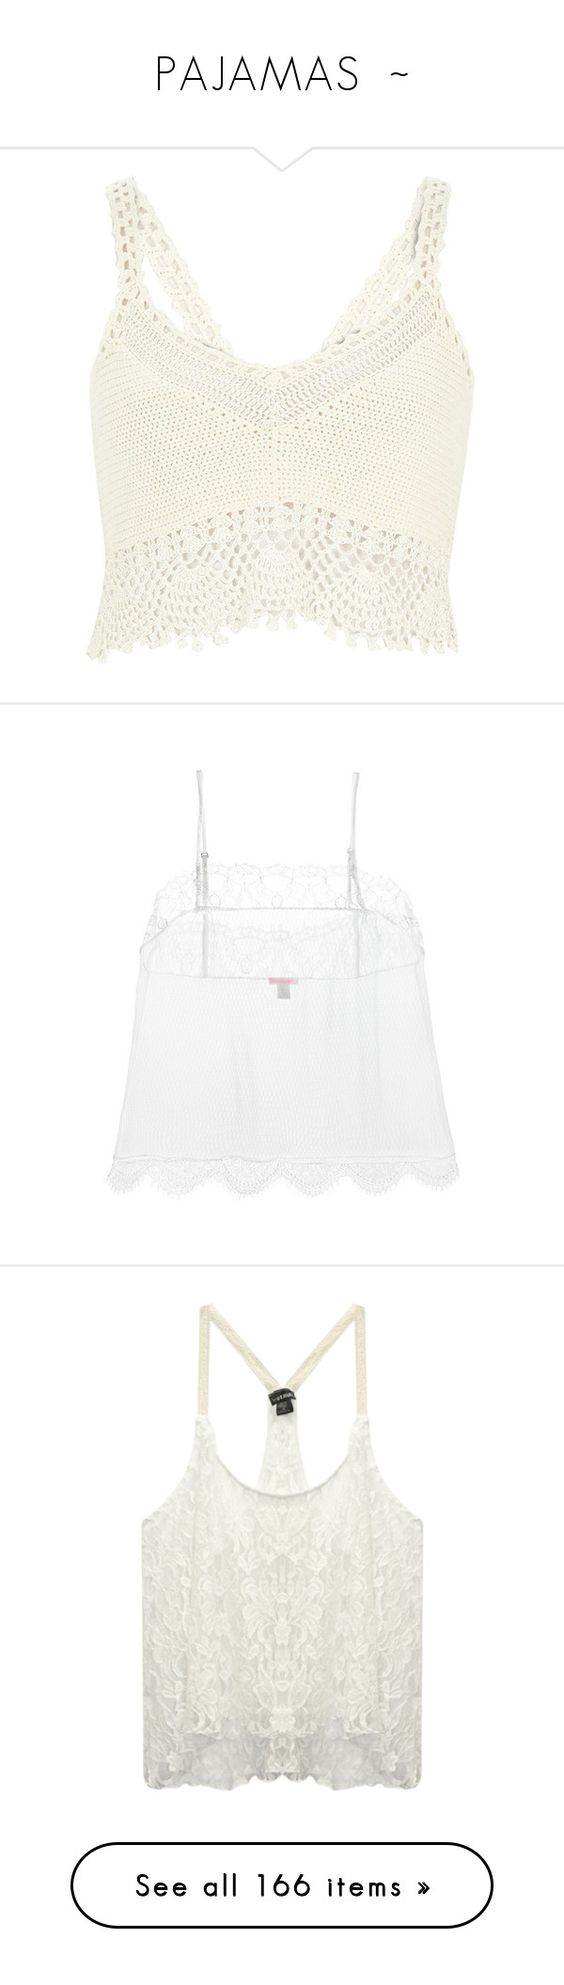 """""""PAJAMAS  ~"""" by kuropirate on Polyvore featuring tops, crop tops, shirts, bralet, tank tops, knitwear, sale, white, women and holiday tops"""